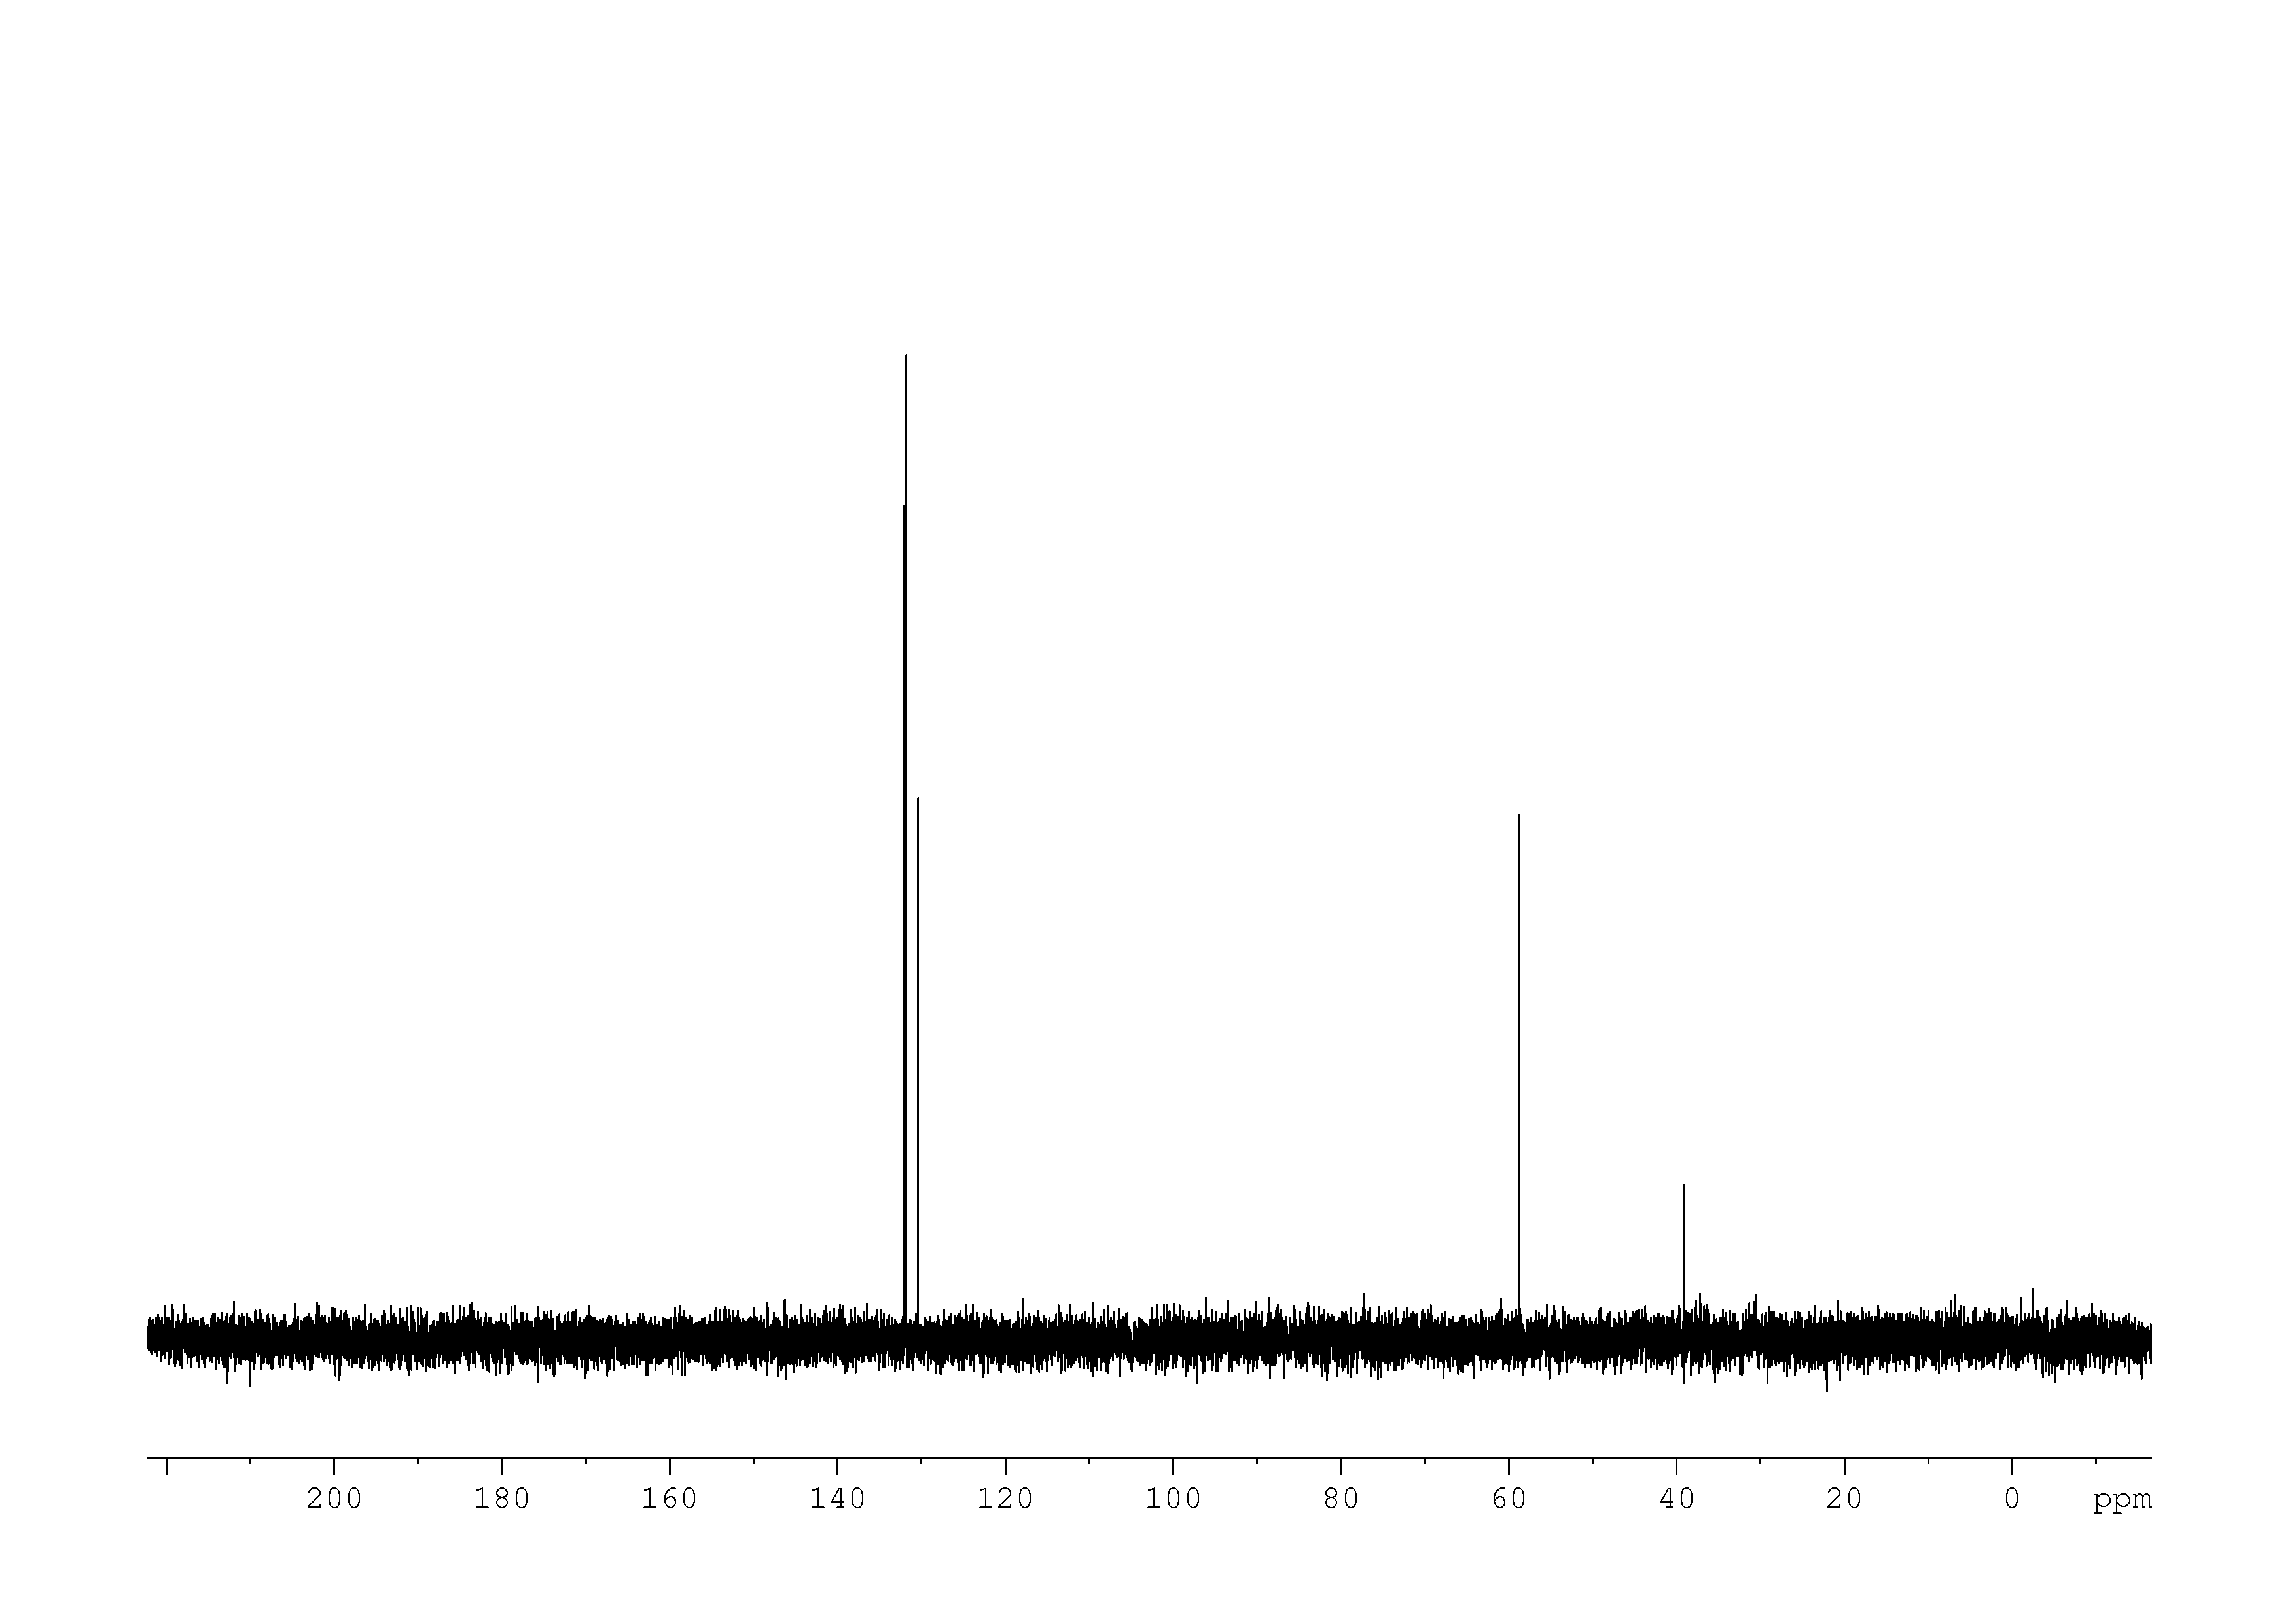 1D DEPT90, 7.4 spectrum for L-Phenylalanine